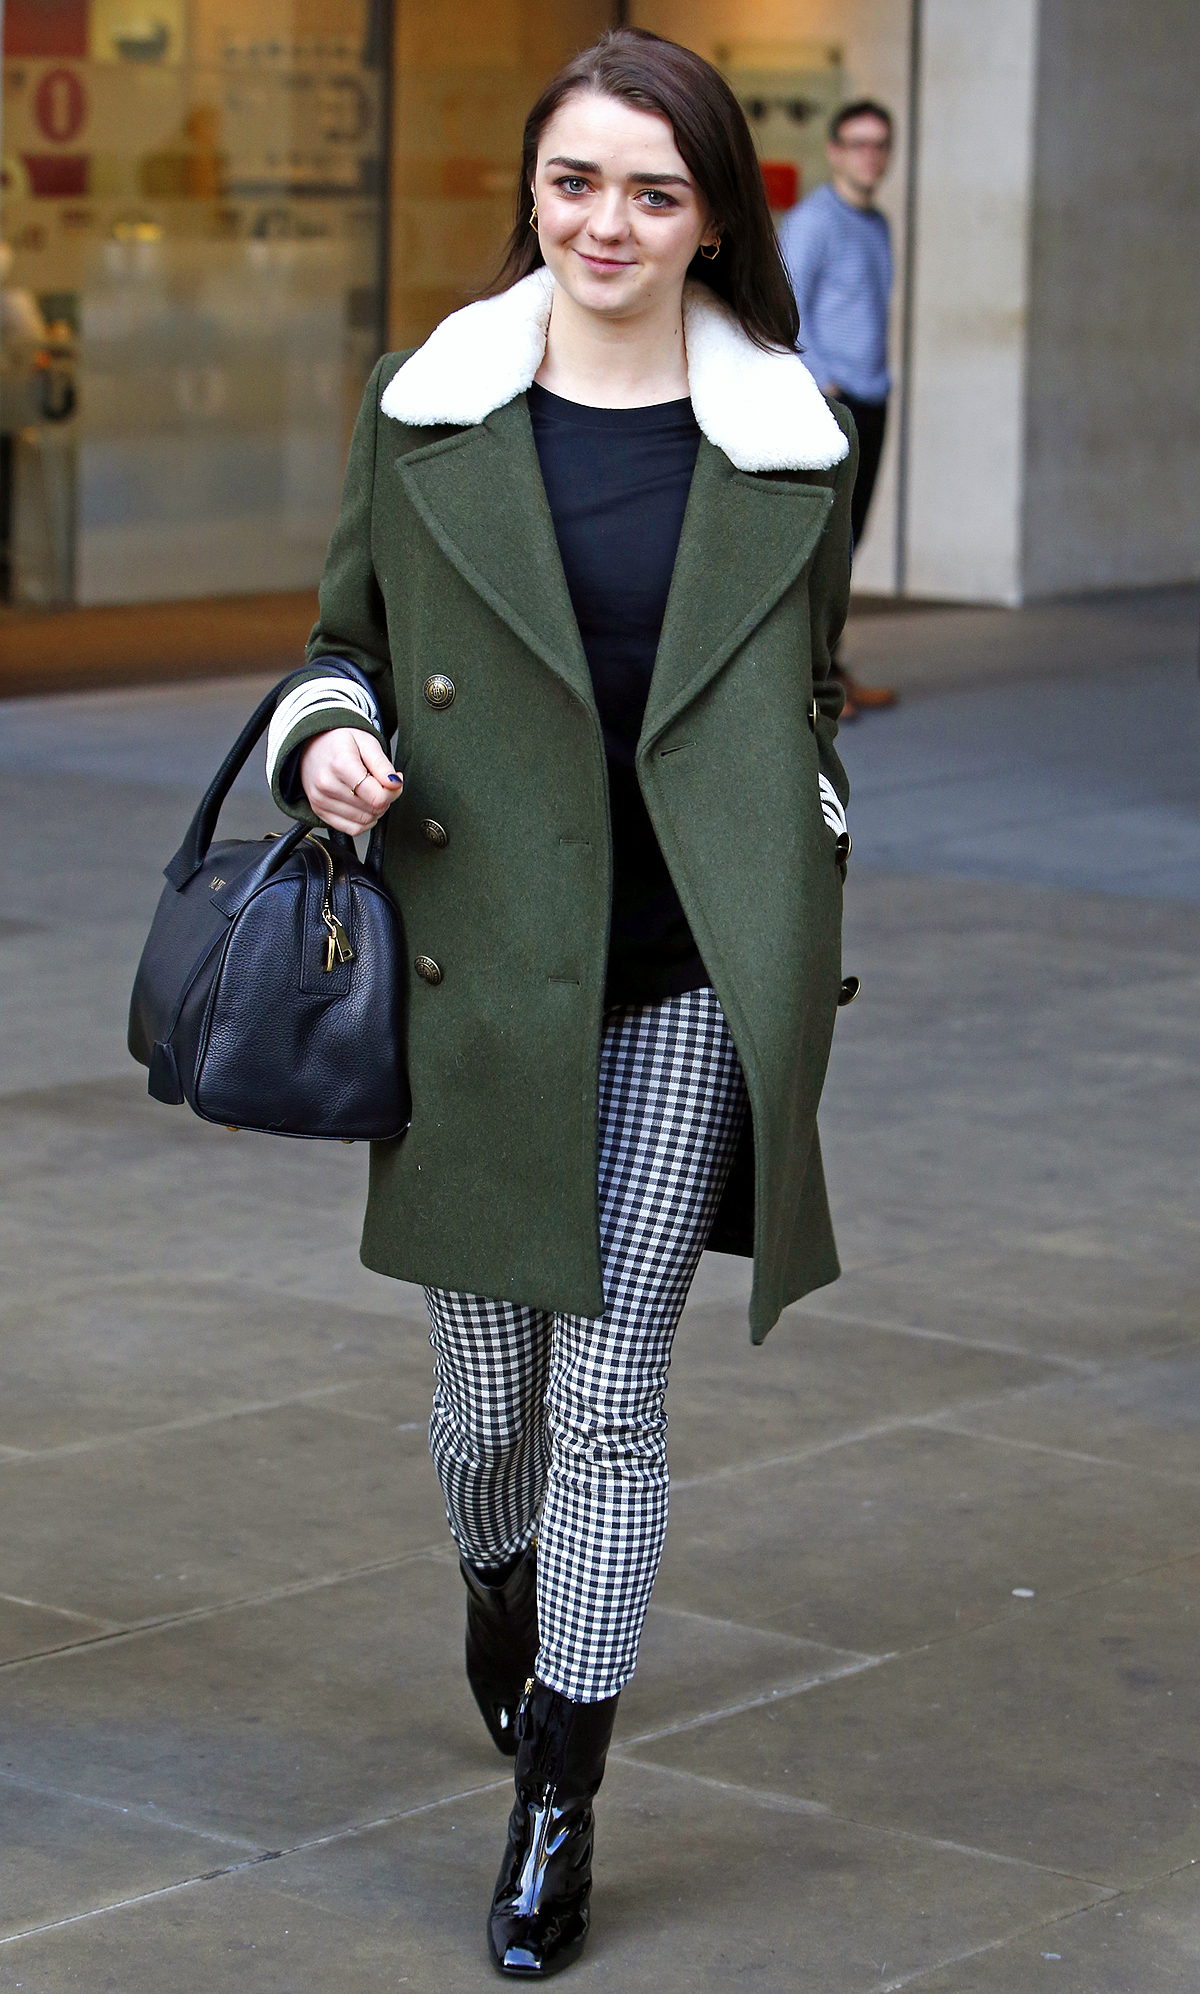 Maisie Williams out and about, London, UK - 17 Jan 2017